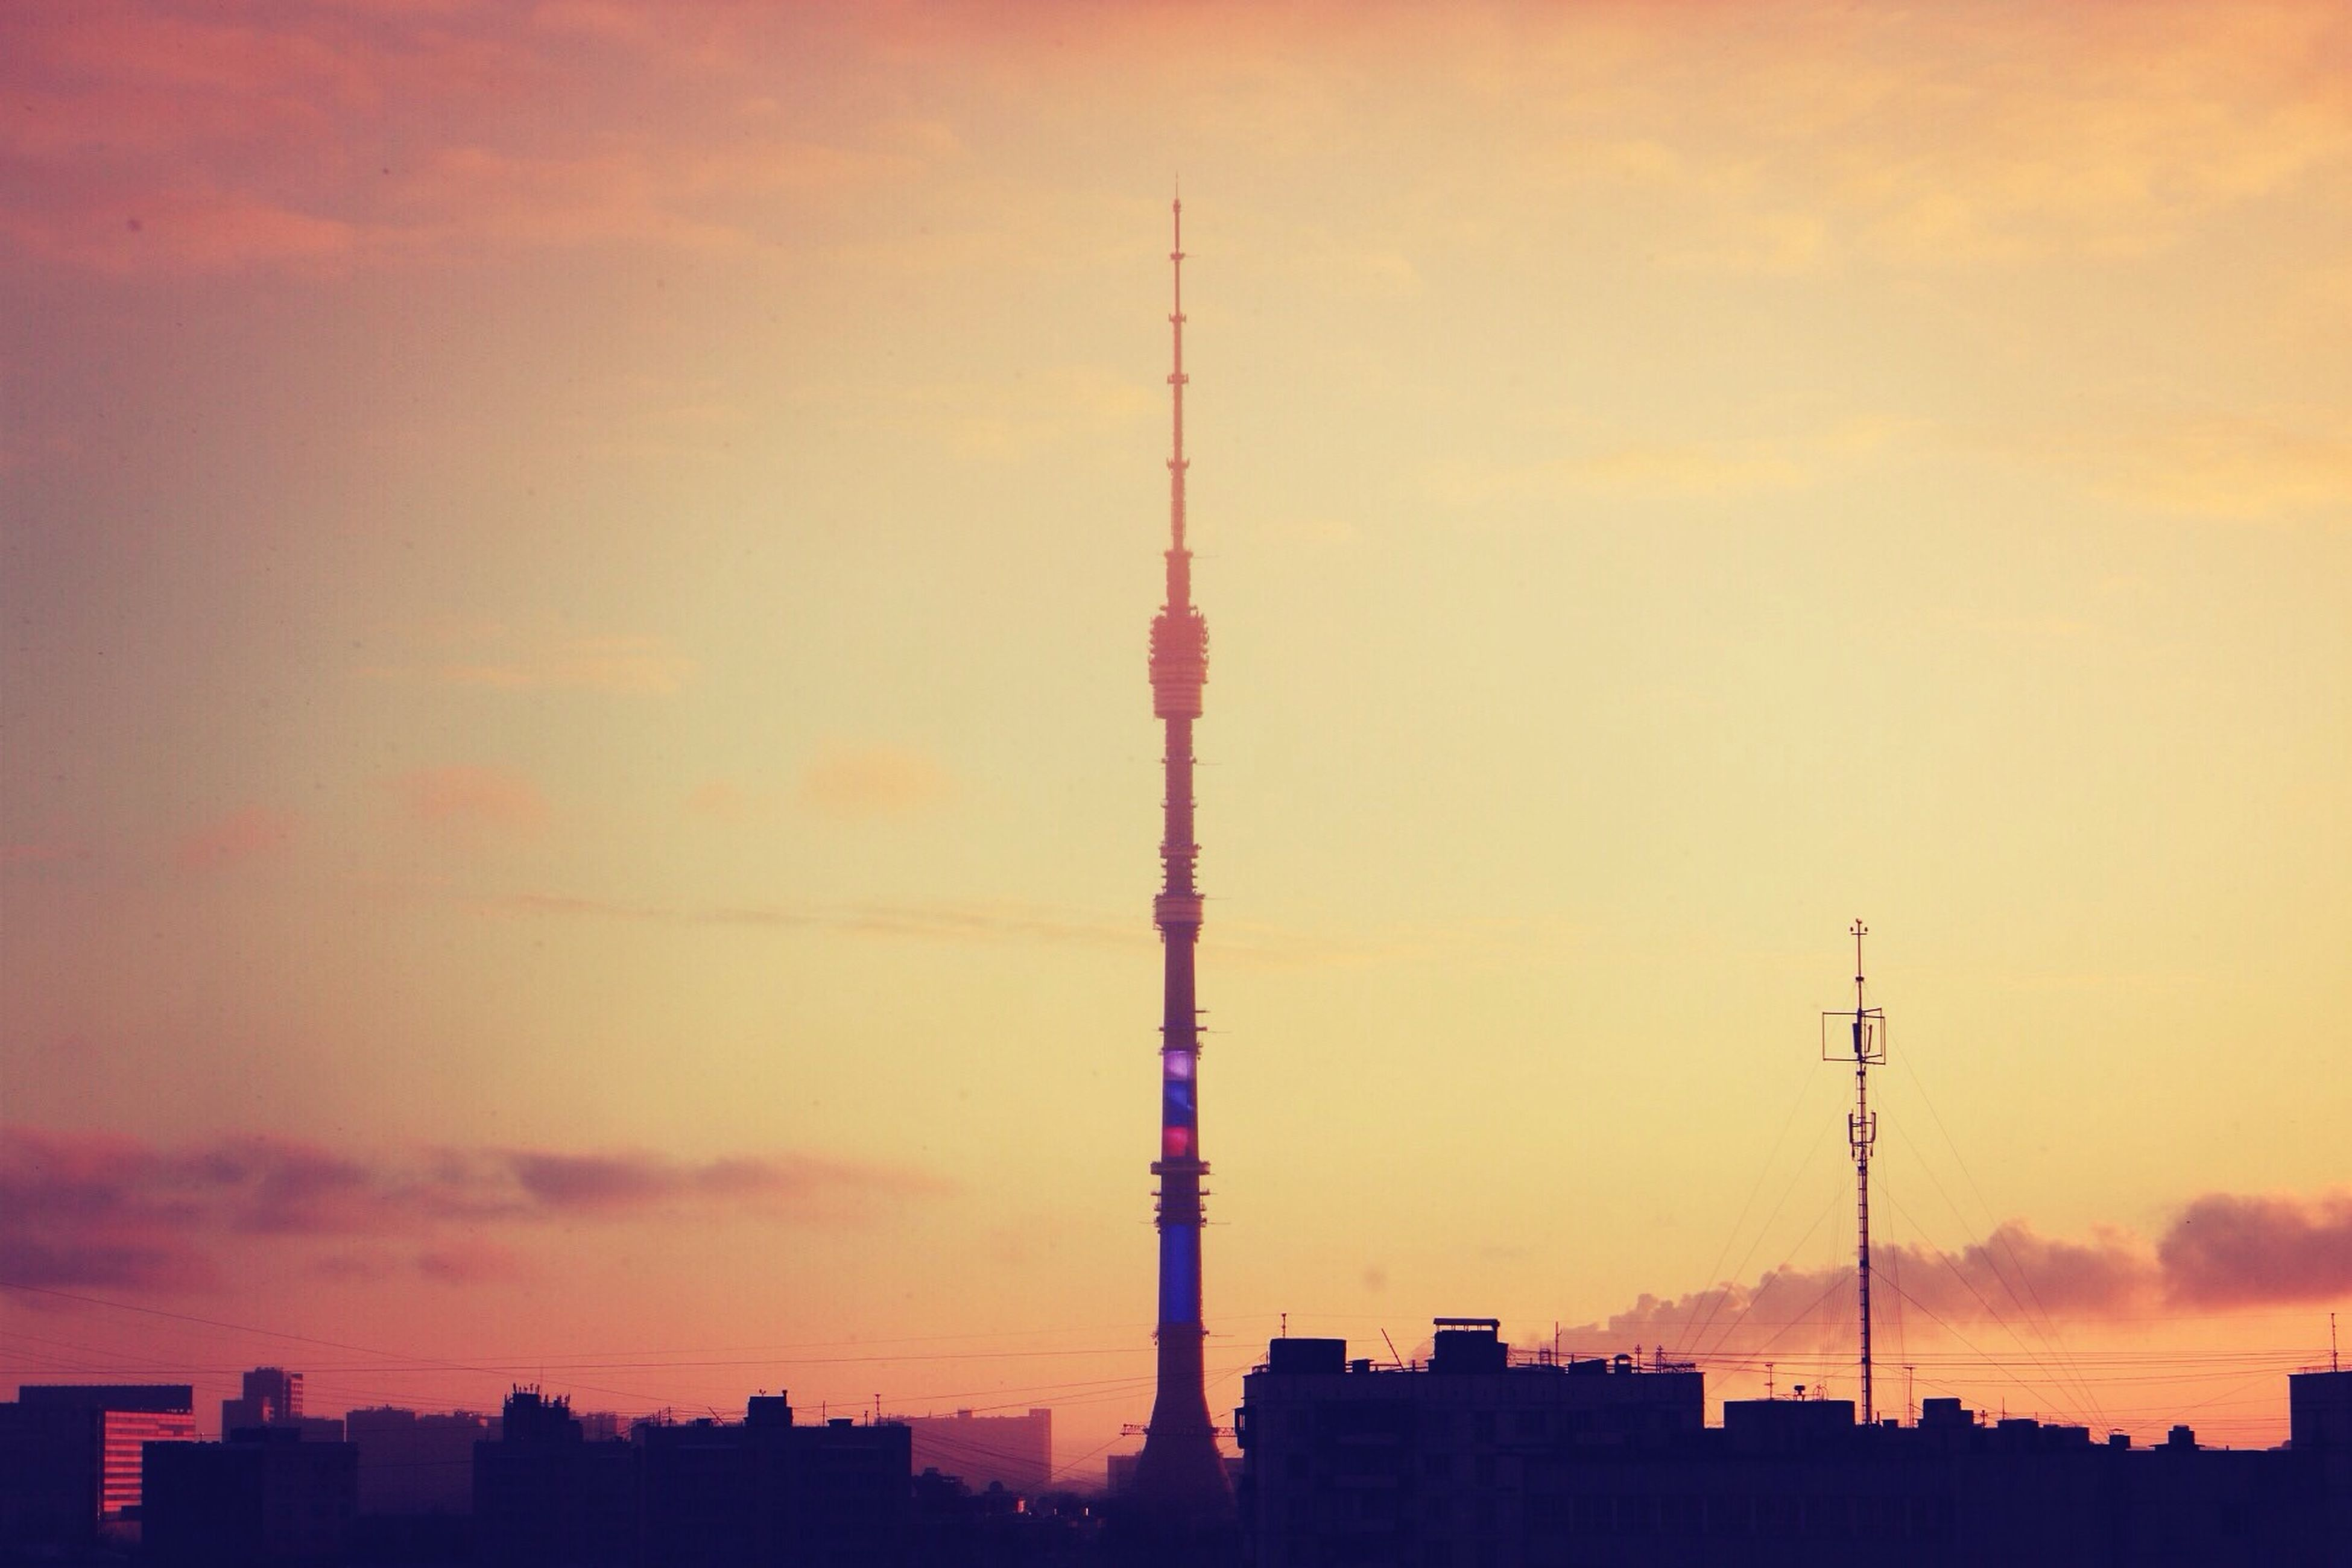 building exterior, architecture, sunset, built structure, tower, communications tower, tall - high, city, silhouette, sky, skyscraper, spire, orange color, communication, low angle view, cloud - sky, fernsehturm, capital cities, television tower, travel destinations